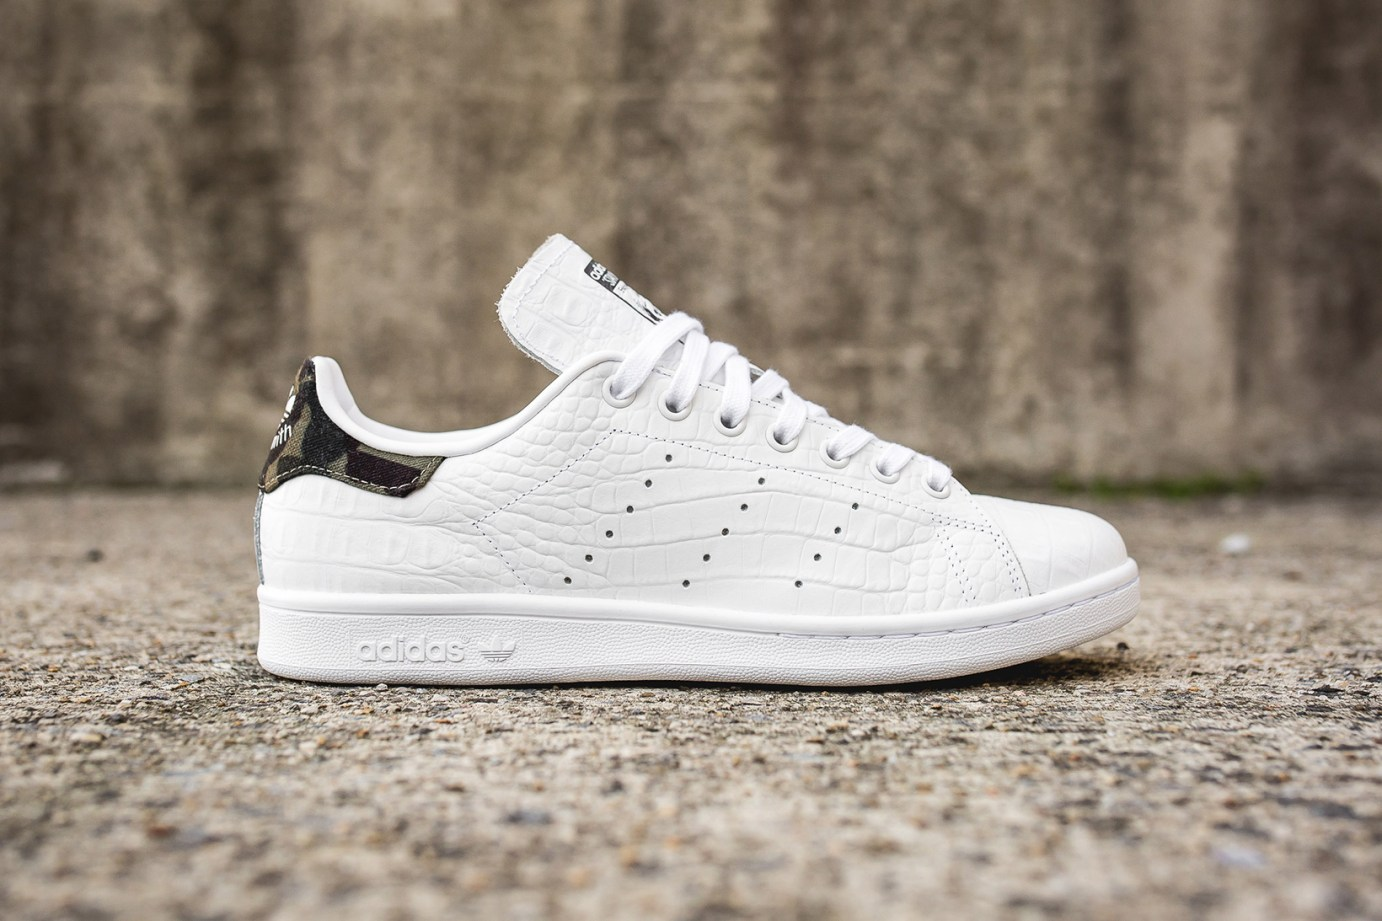 newest collection 3c13a 5a05f Soldes adidas stan smith snakeskin En Ligne Les Baskets adidas stan smith  snakeskin en vente outlet. Nouvelle Collection adidas stan smith snakeskin  2017 ...